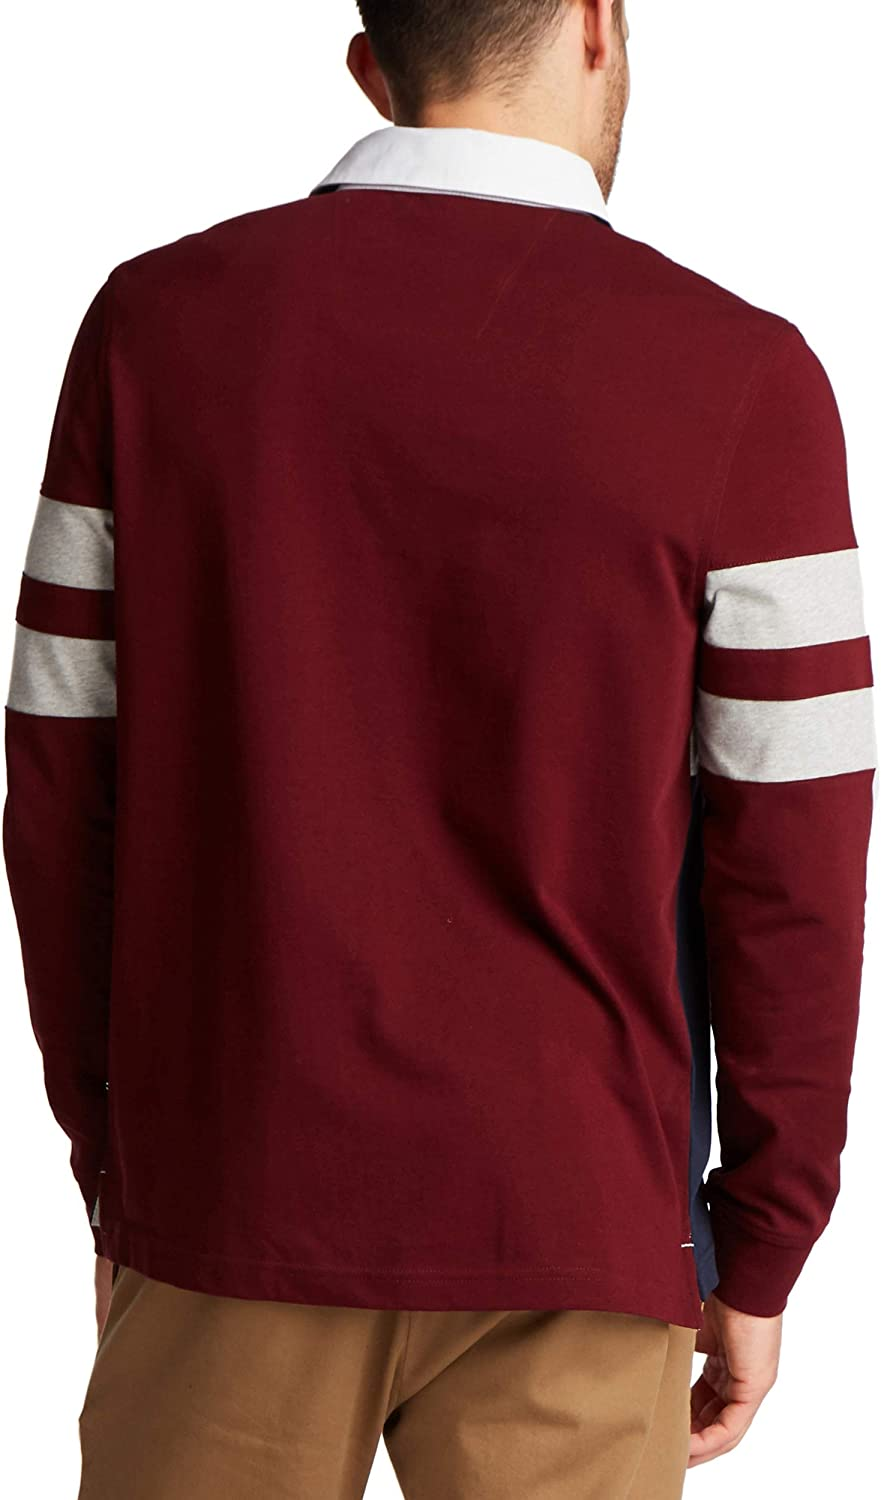 Nautica Men's Classic Fit Long Sleeve Jersey Polo in Rugby Stripe Shirt Royal Burgundy